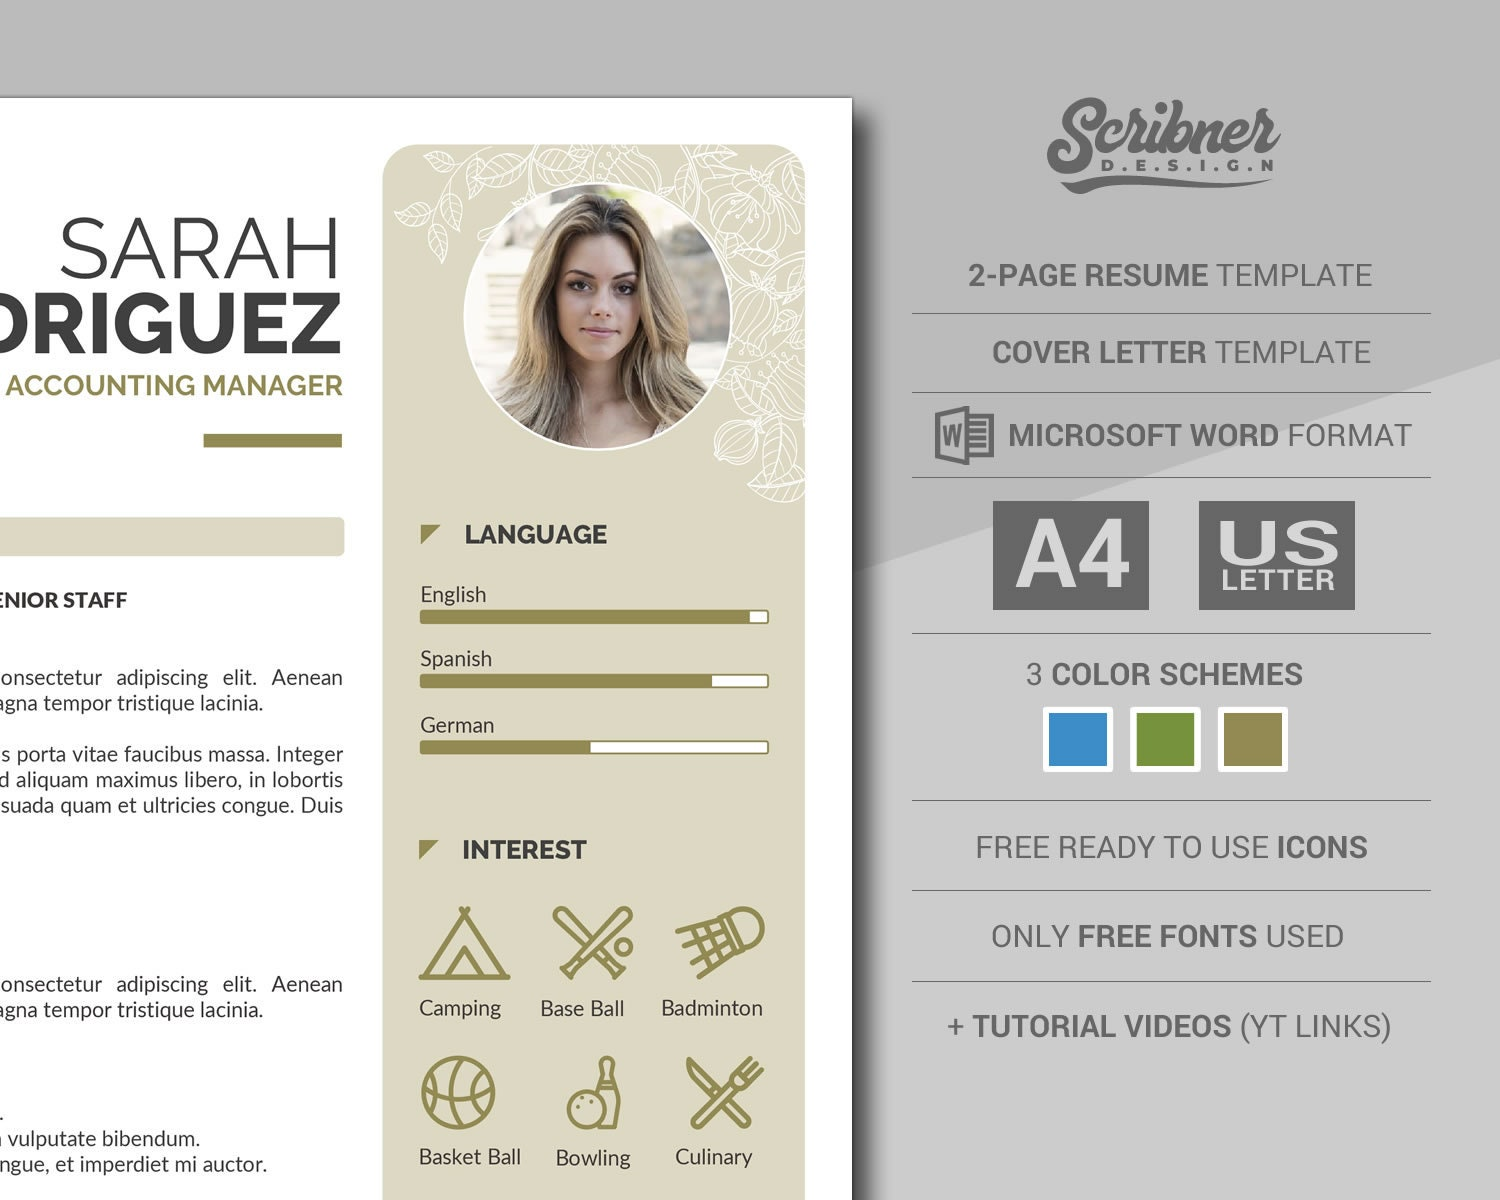 Creative Word Resume Template / CV Template with Cover Letter | 2-Page  Executive Resume with Photo, in 3 Color Themes, Instant Download